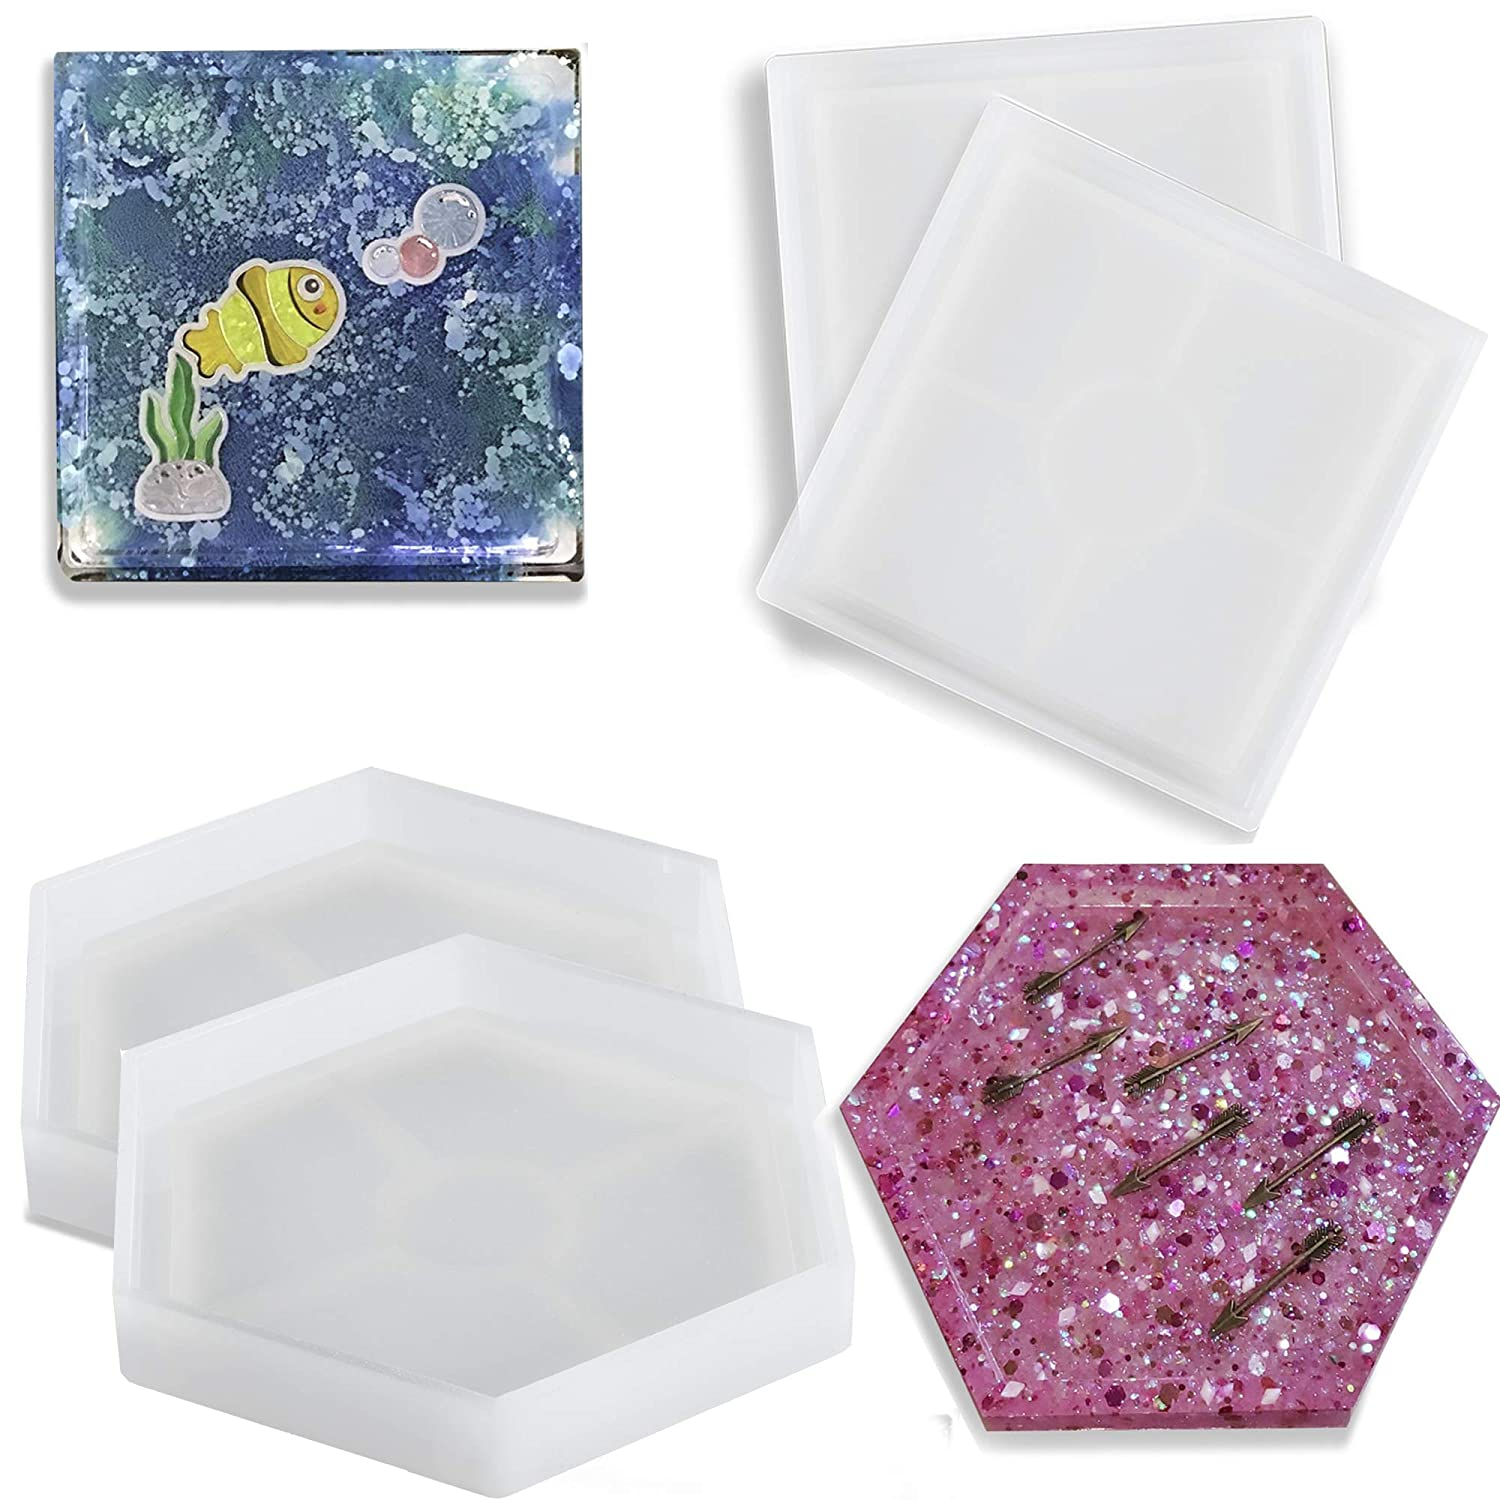 Beautyflier Pack of 4 Silicon Coaster Mold DIY Silicon Resin Molds for Casting with Resin Cement Square and Hexagon Molds